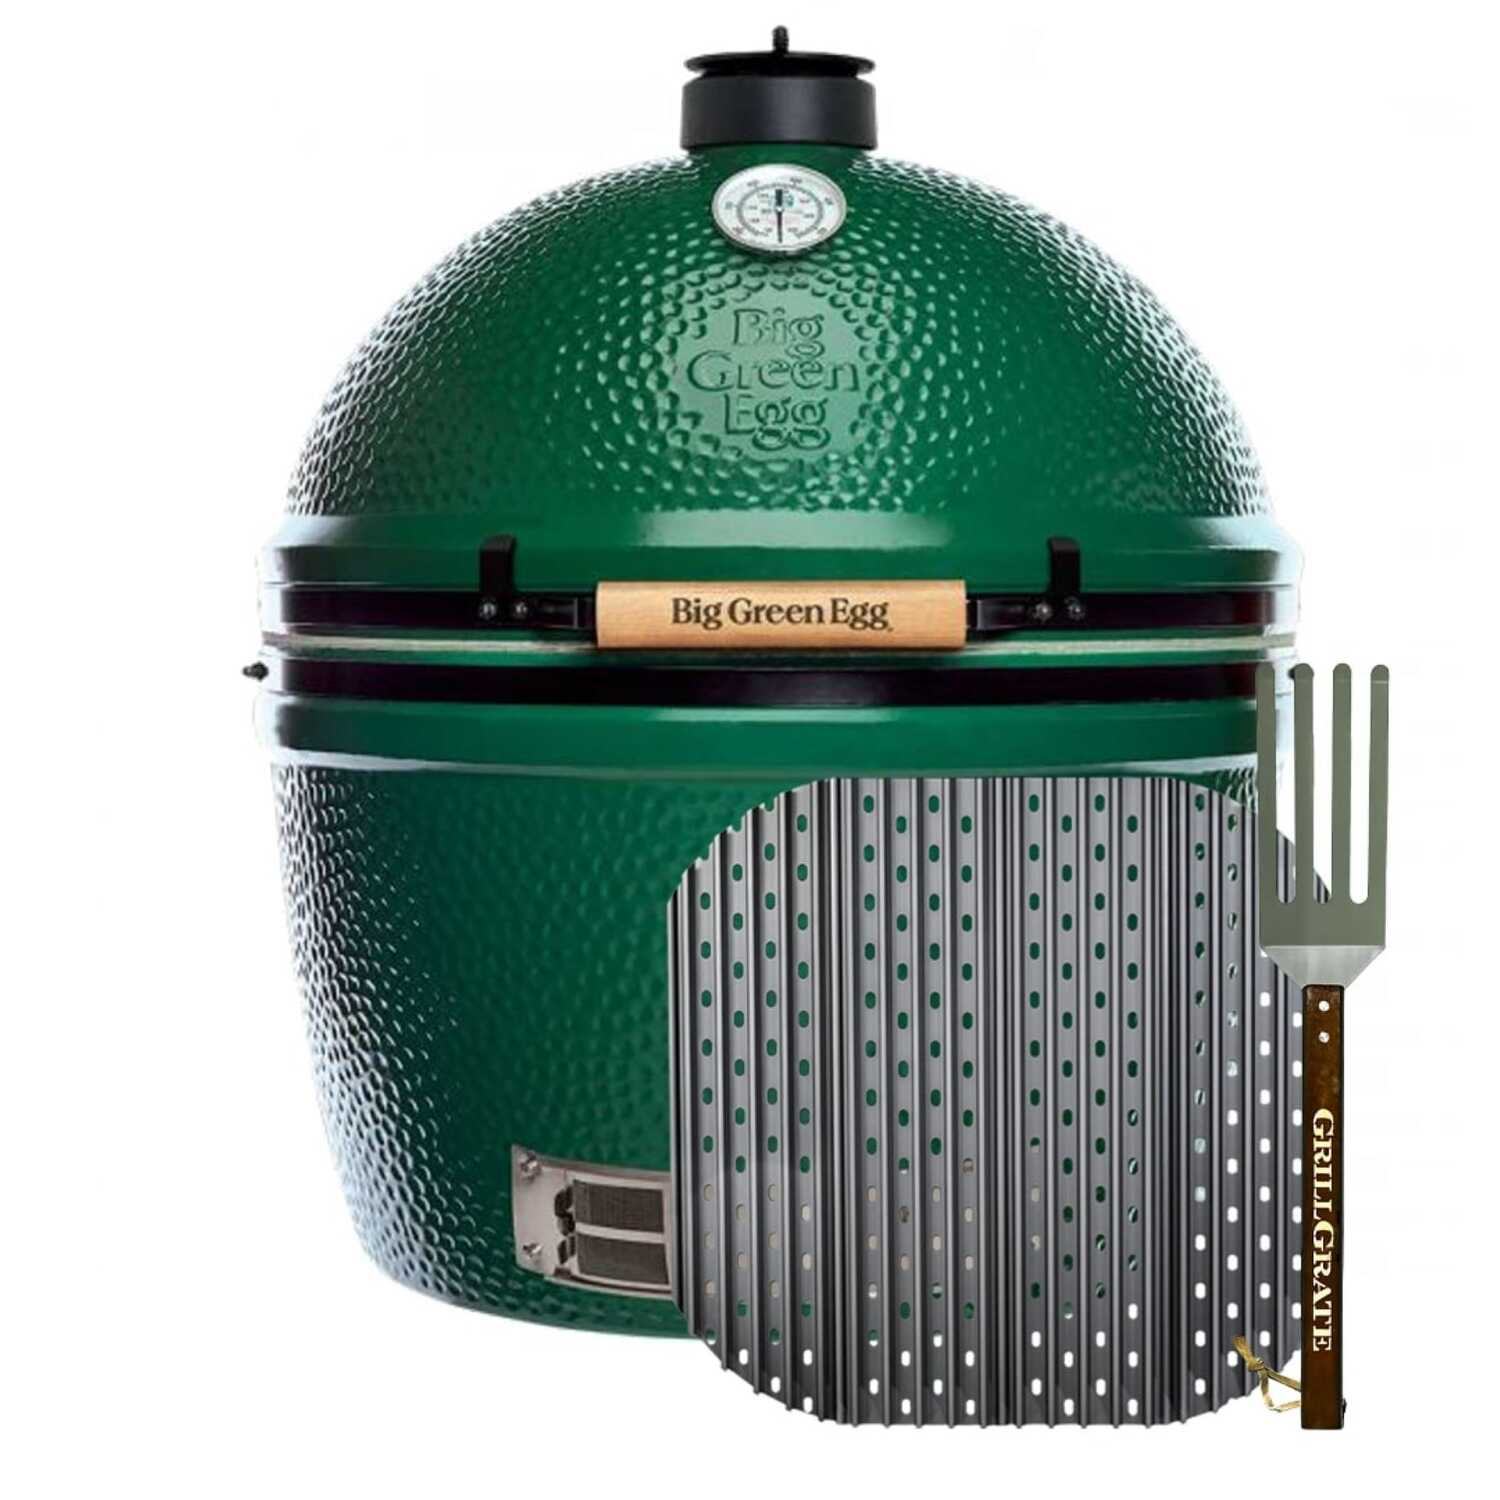 GrillGrate  Aluminum  Grill Grate Kit  Big Green Egg- XL and Big Joe